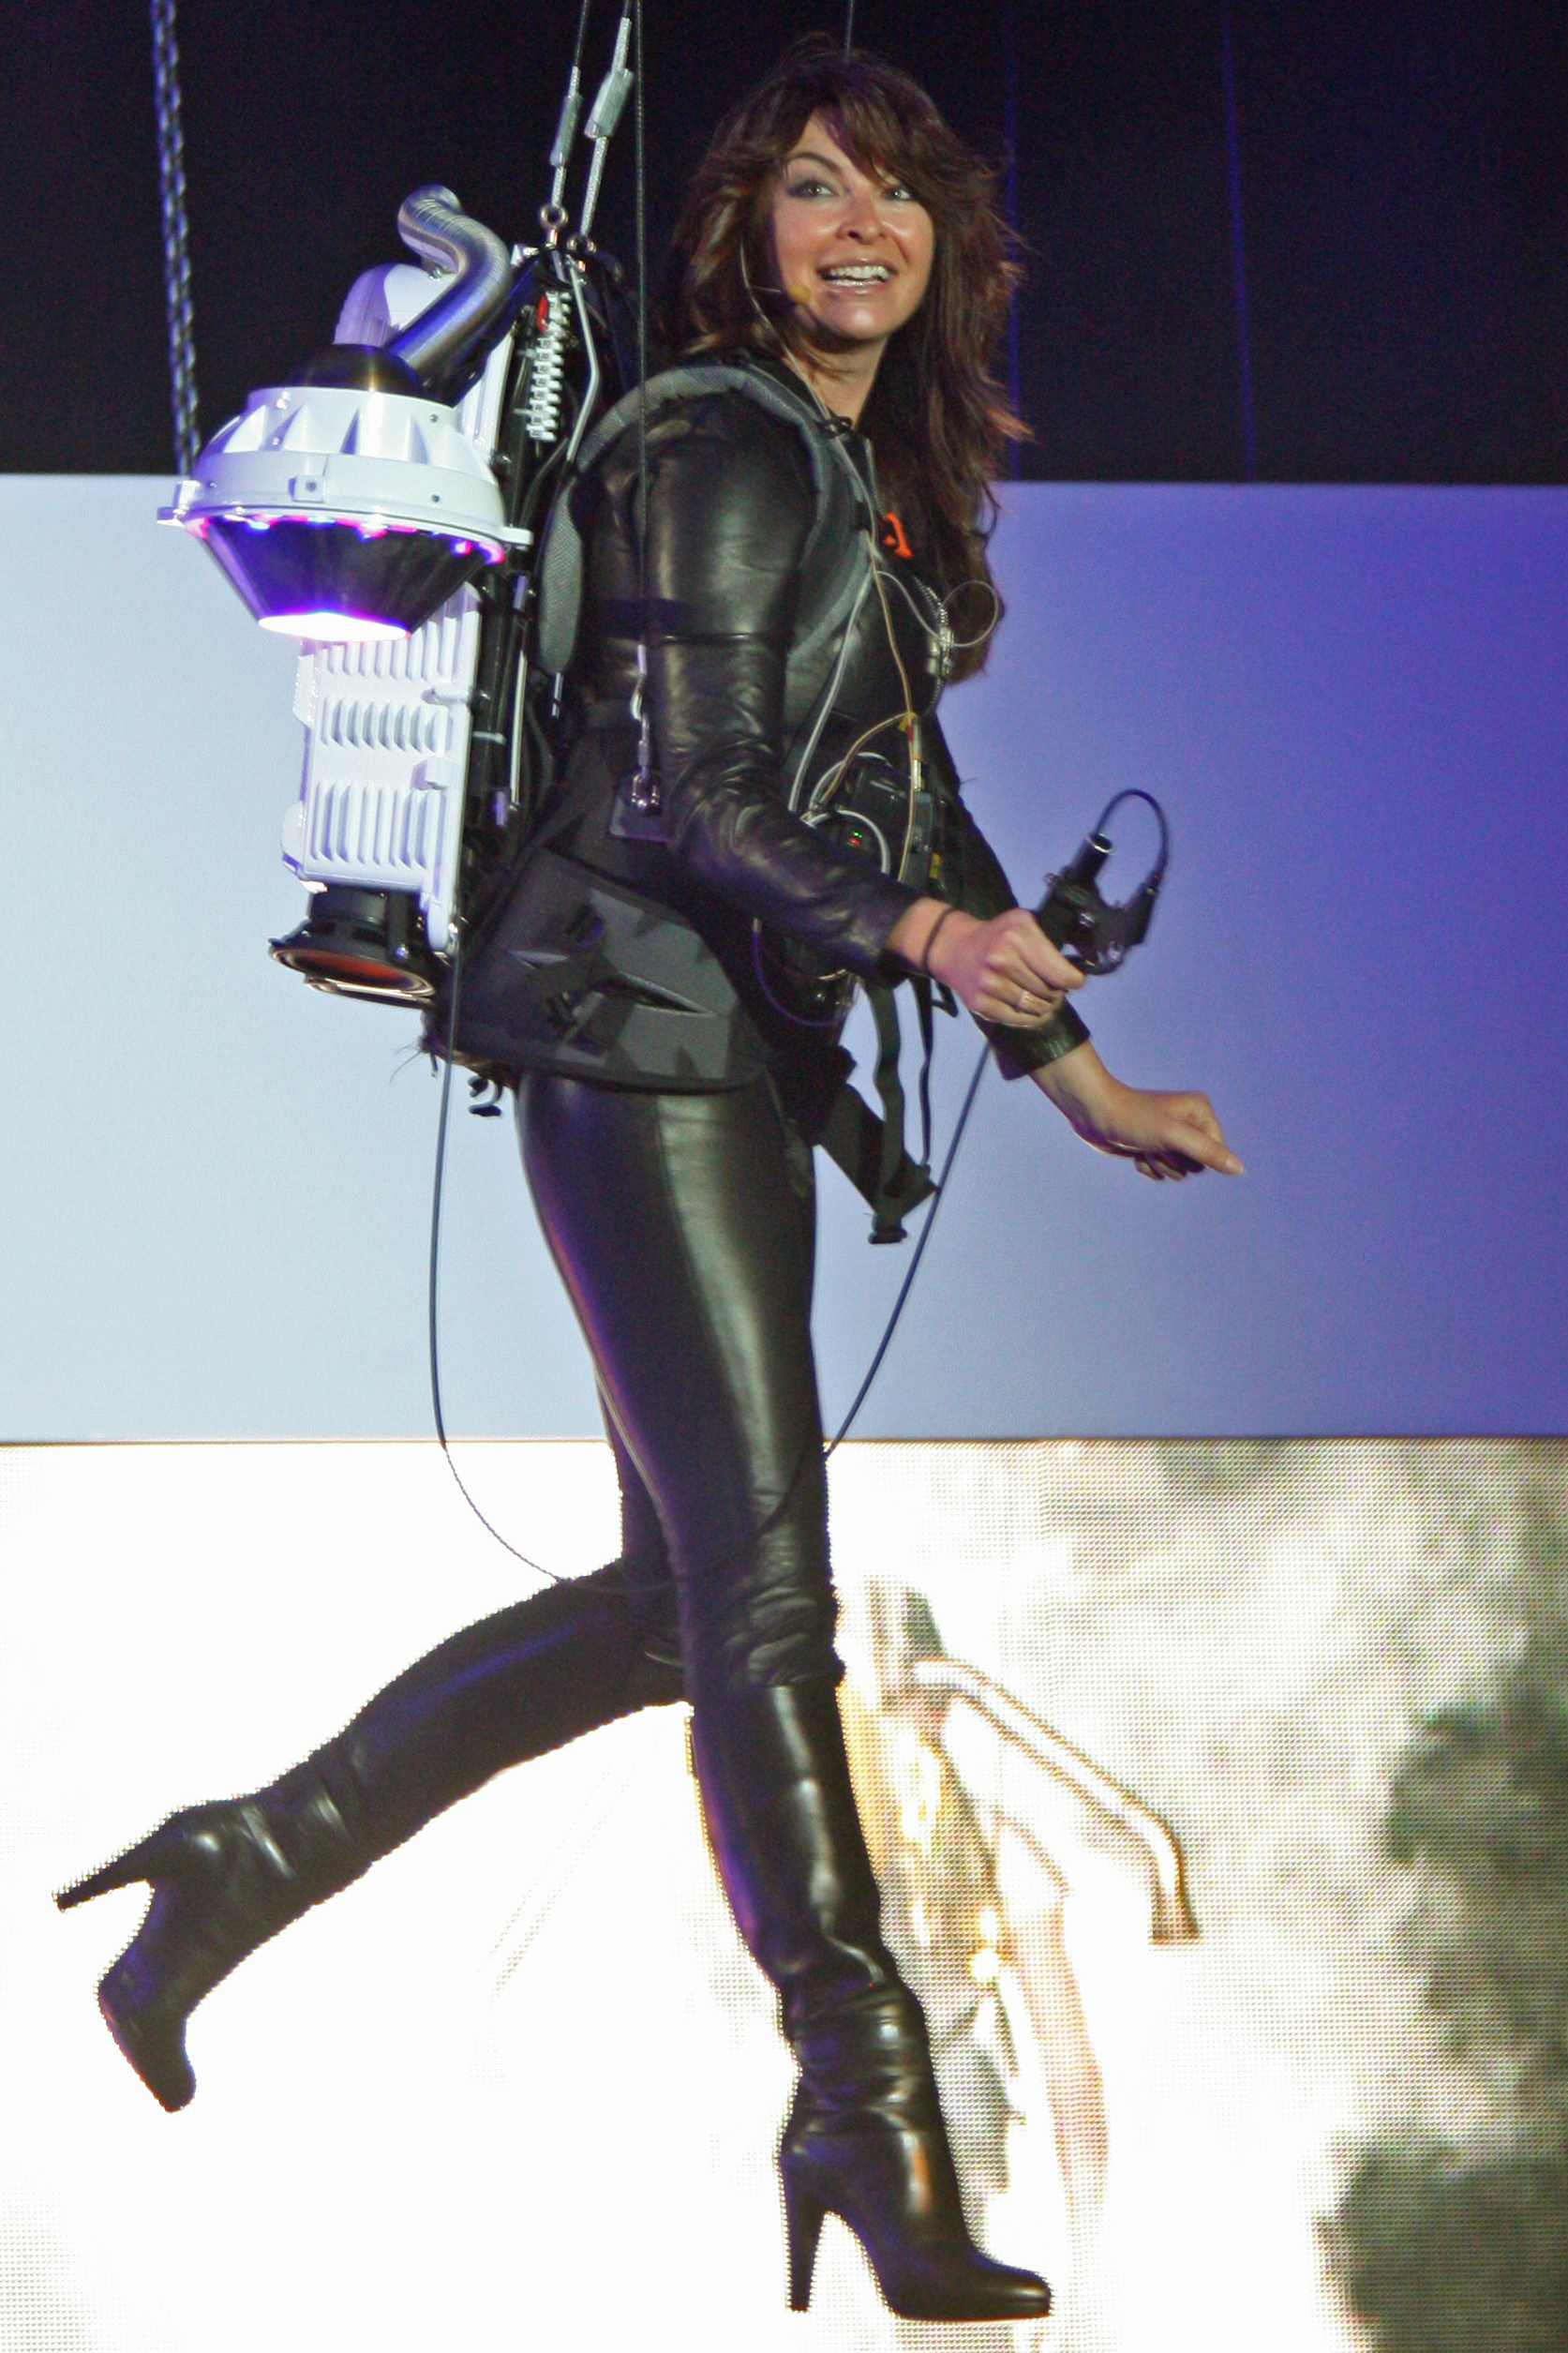 an image of gadget%20shopping Suzi Perry's